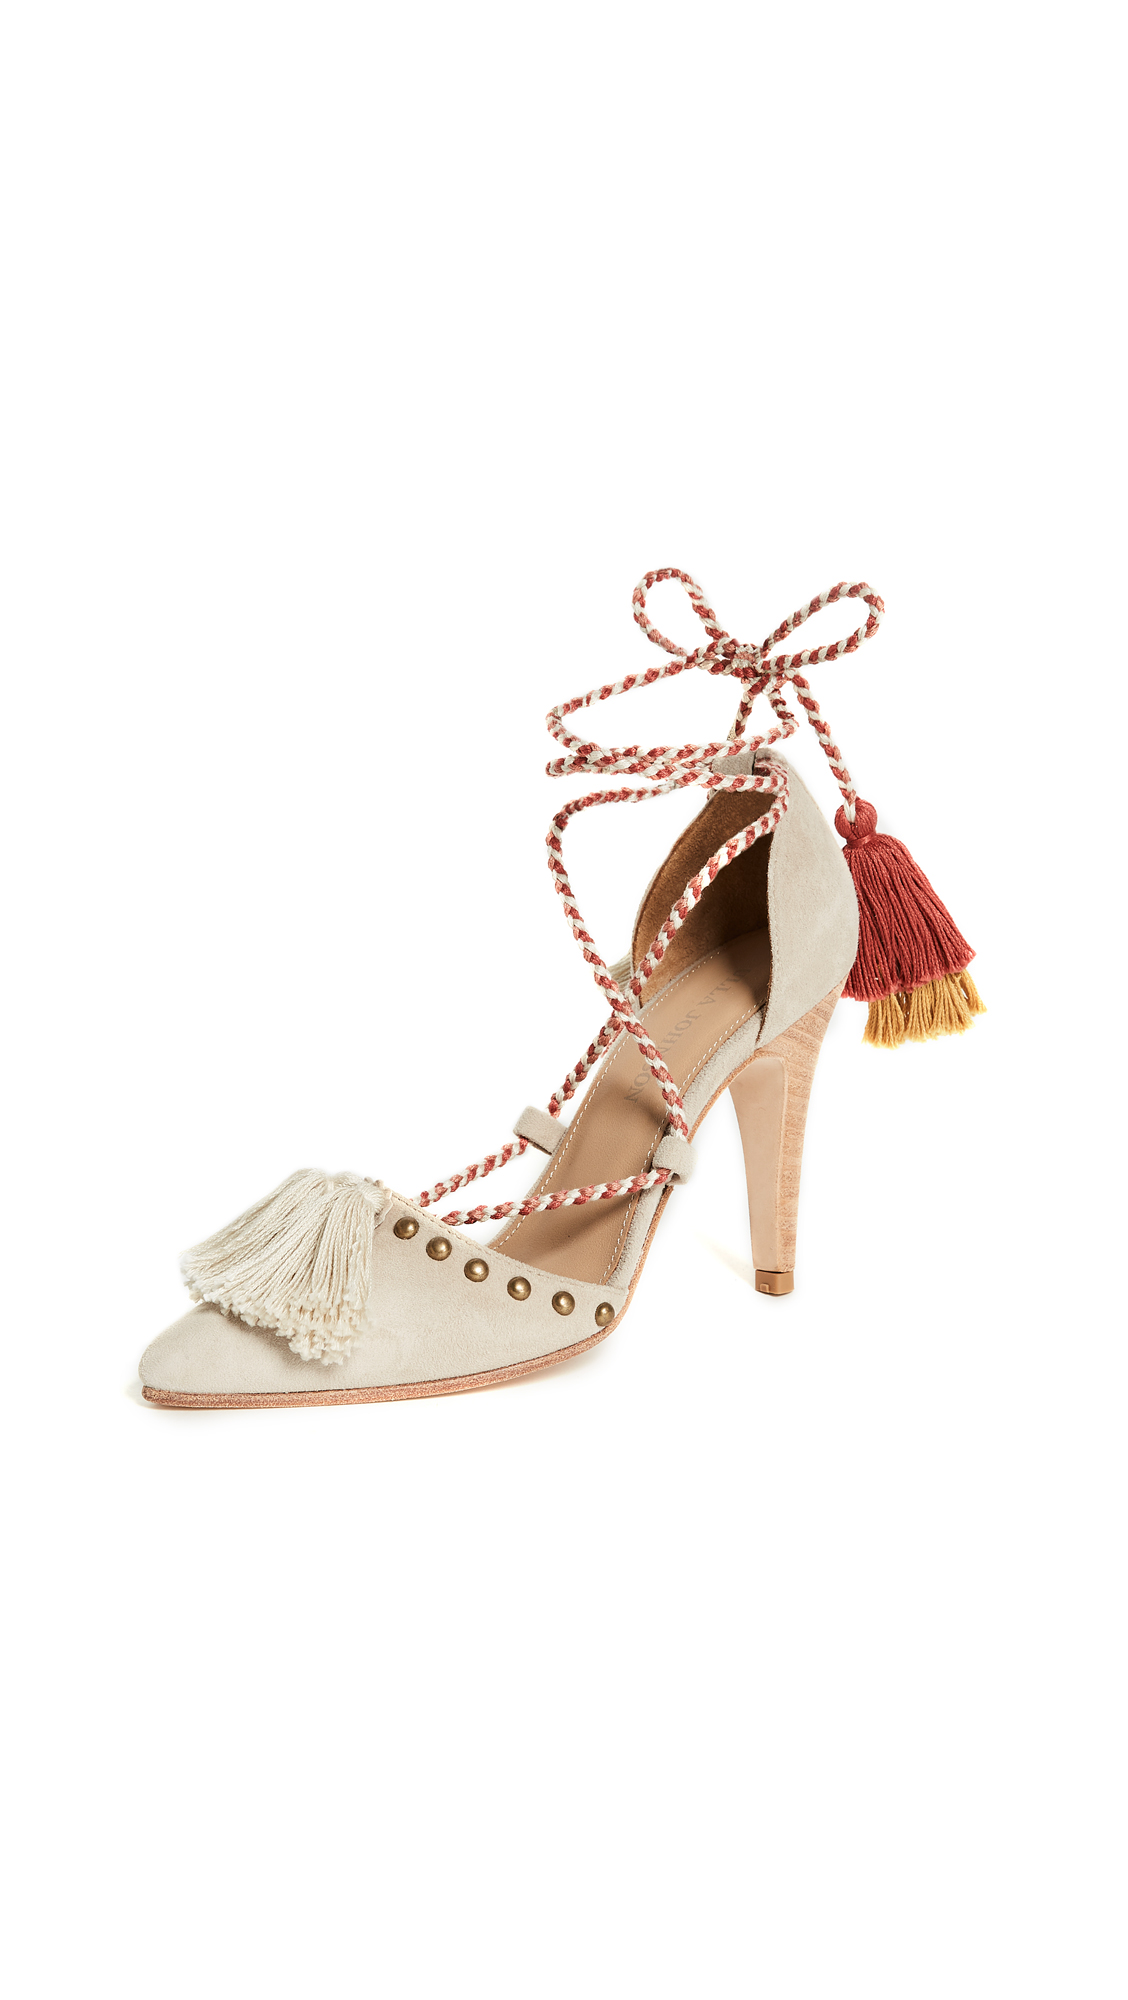 Photo of Ulla Johnson Valentina Heels - buy Ulla Johnson shoes